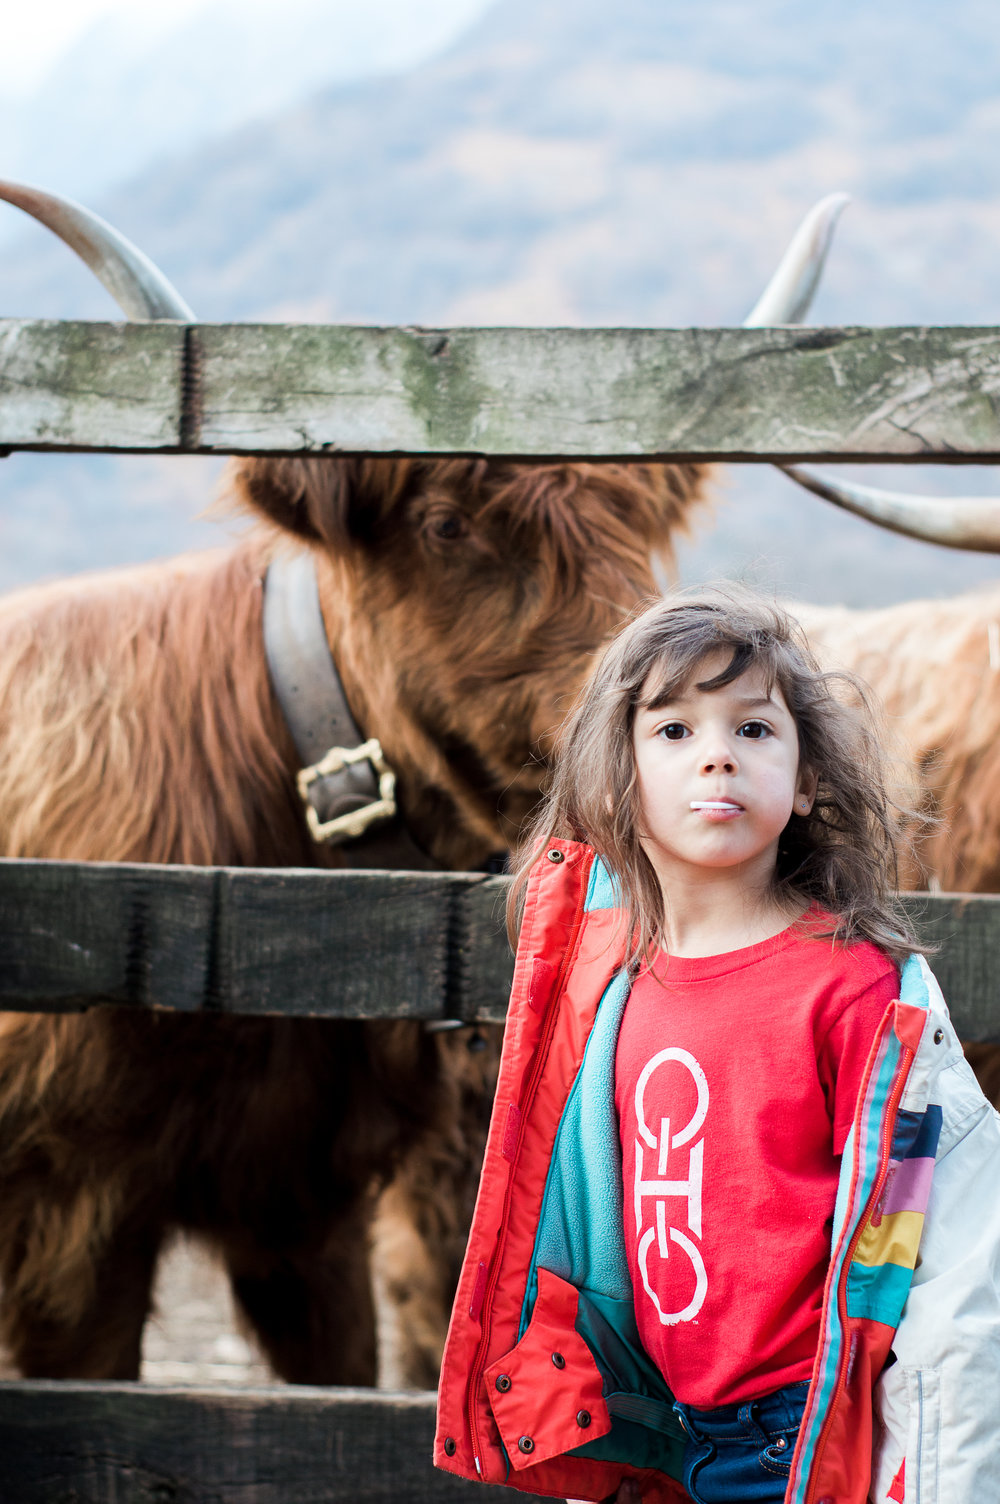 Bonus photo of Sutton and the cows because both are super cute.